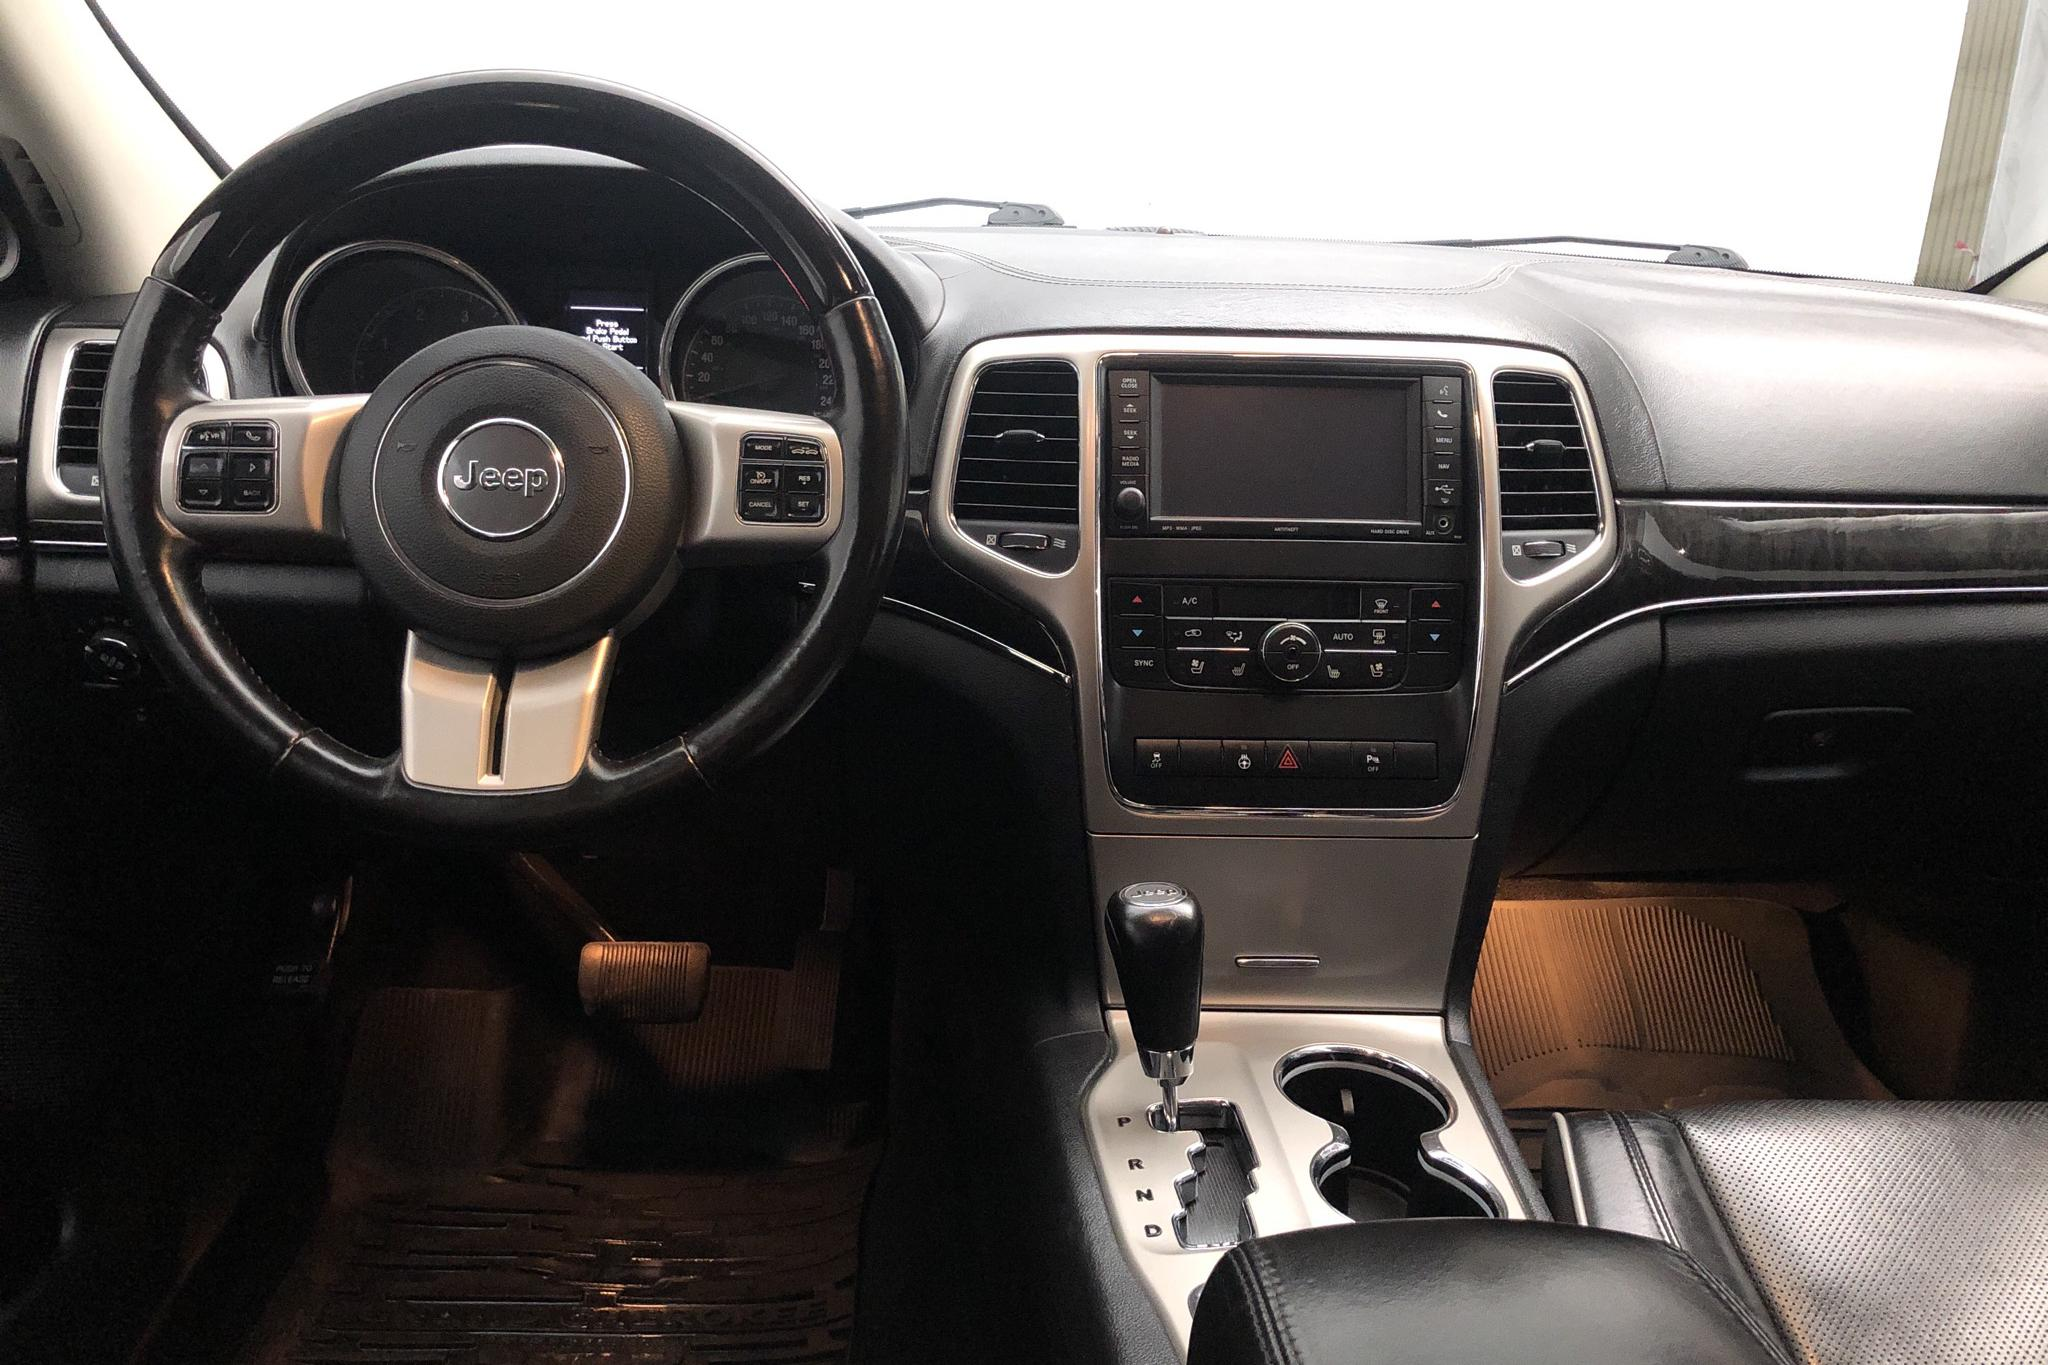 Jeep Grand Cherokee 3.0 CRD V6 (241hk) - 166 990 km - Automatic - Dark Grey - 2012